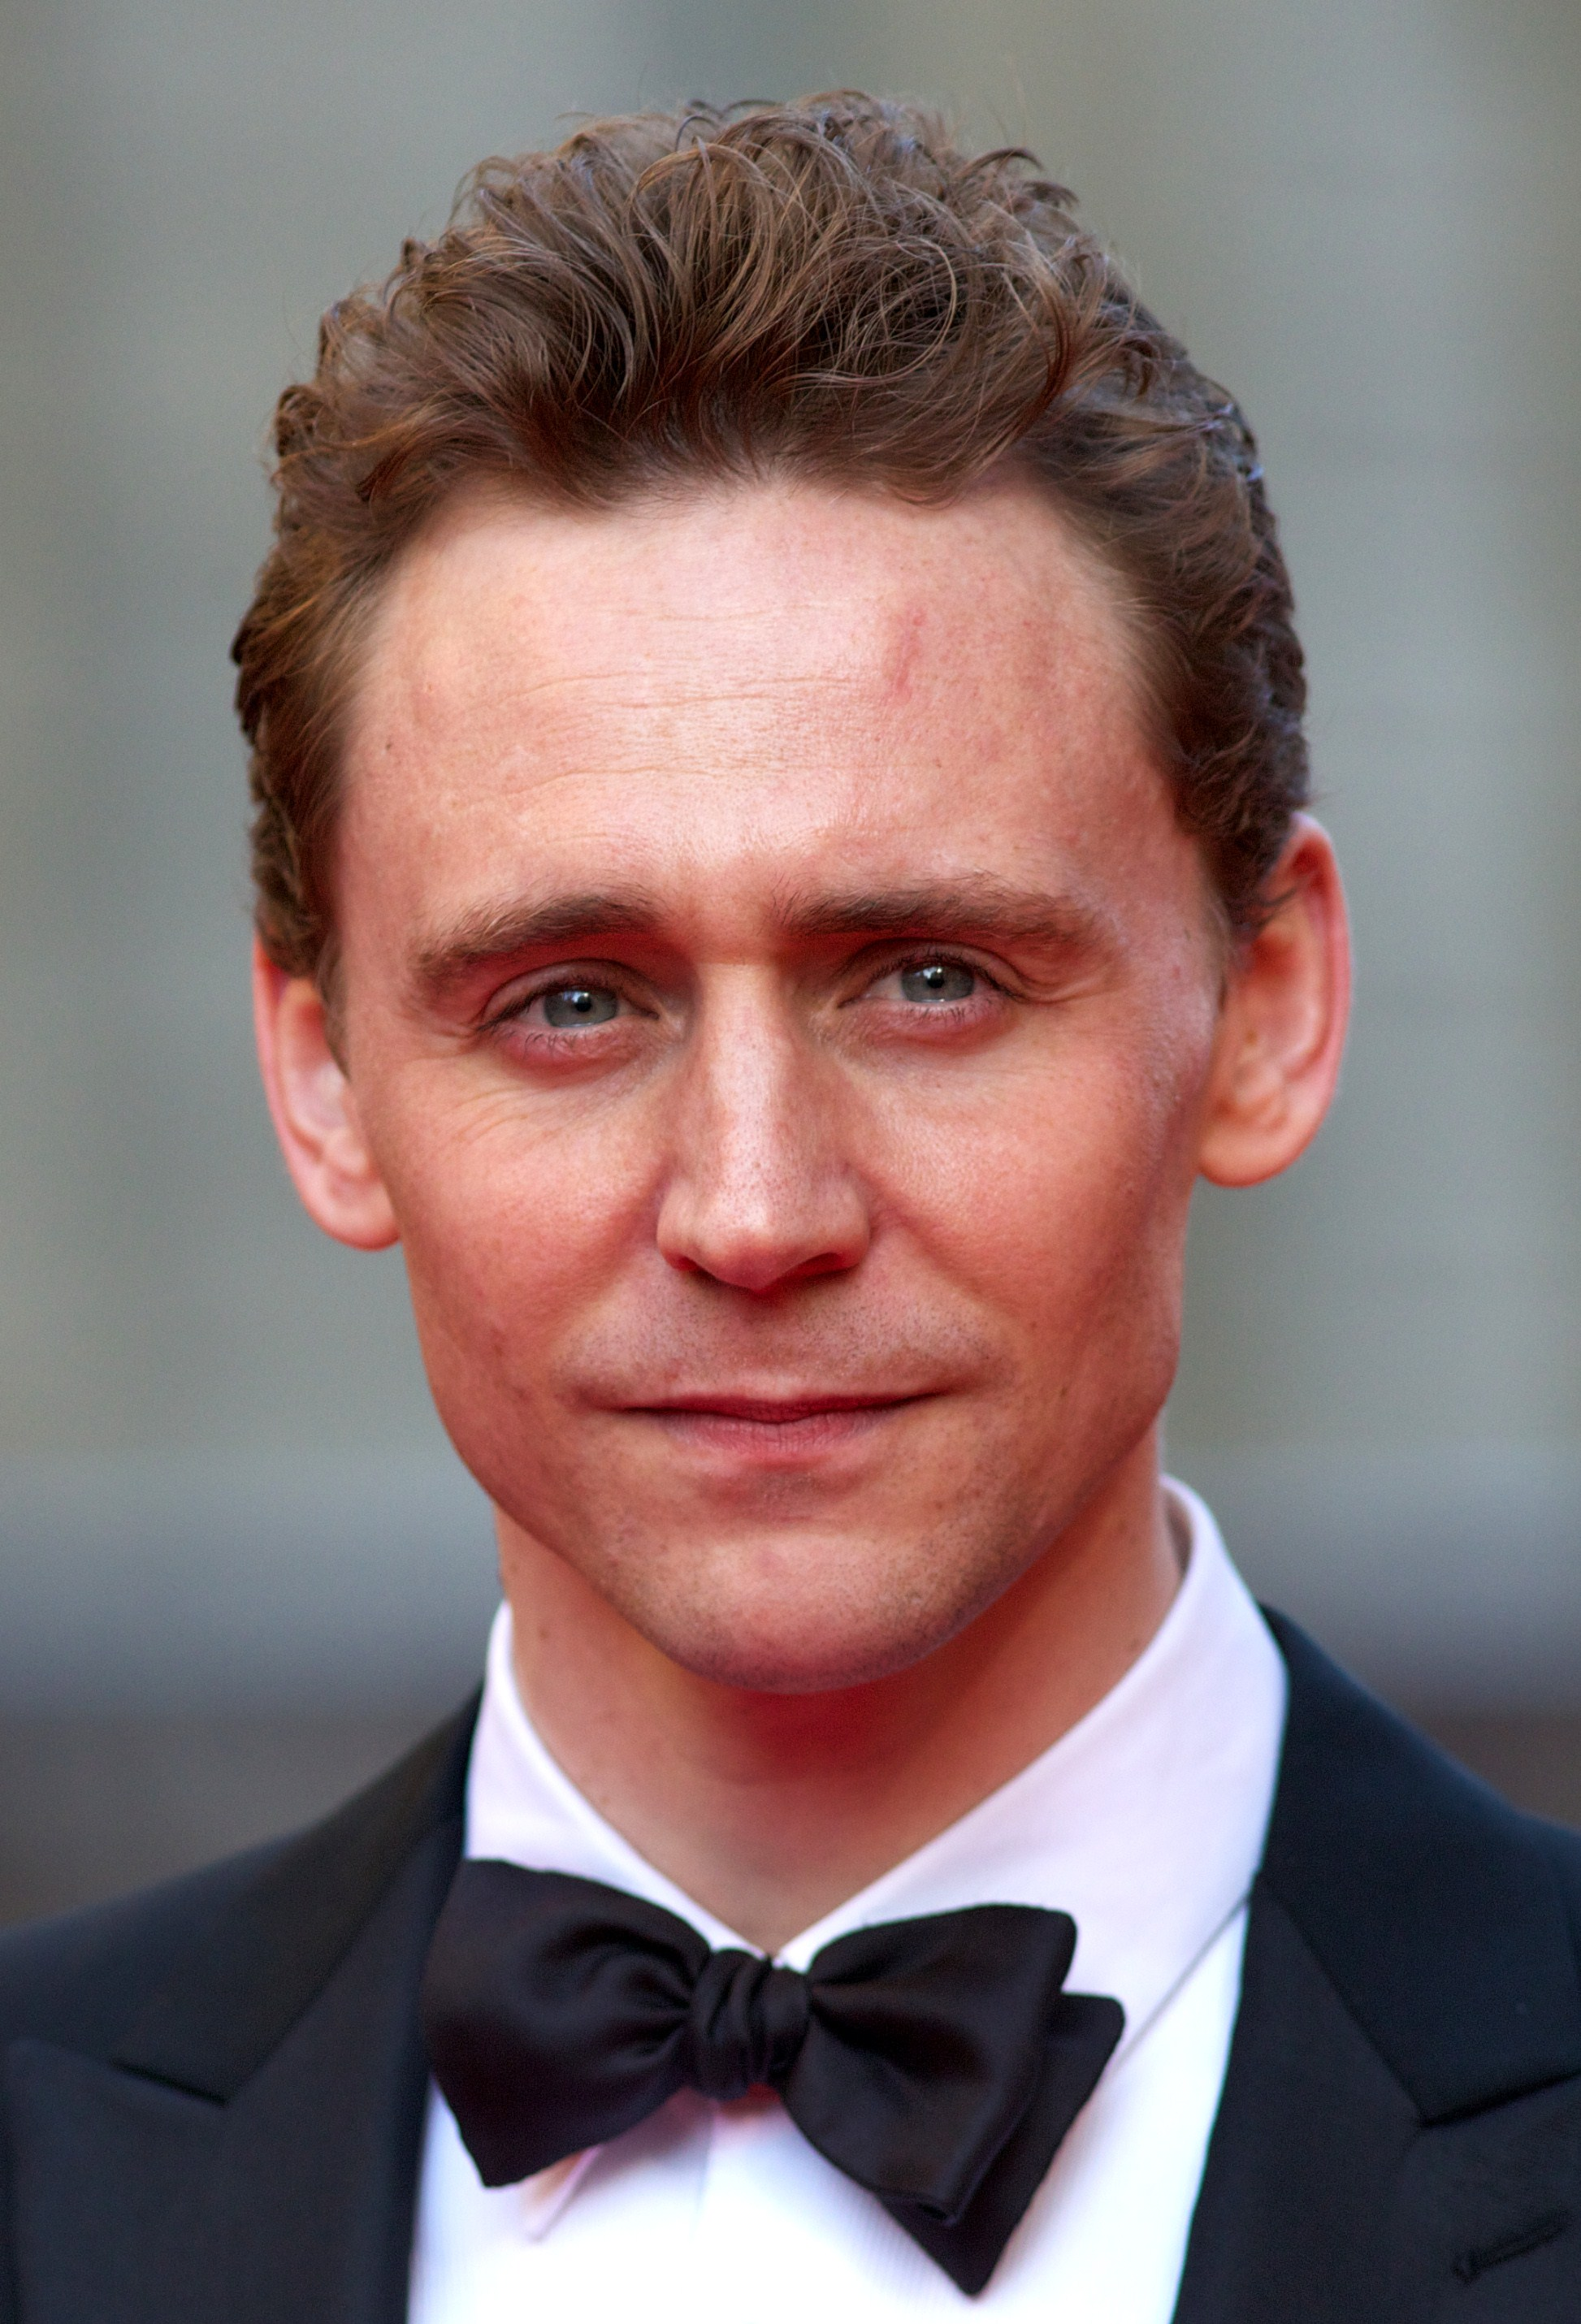 Tom Hiddleston Reading 'High Rise' Will Make Waiting For The